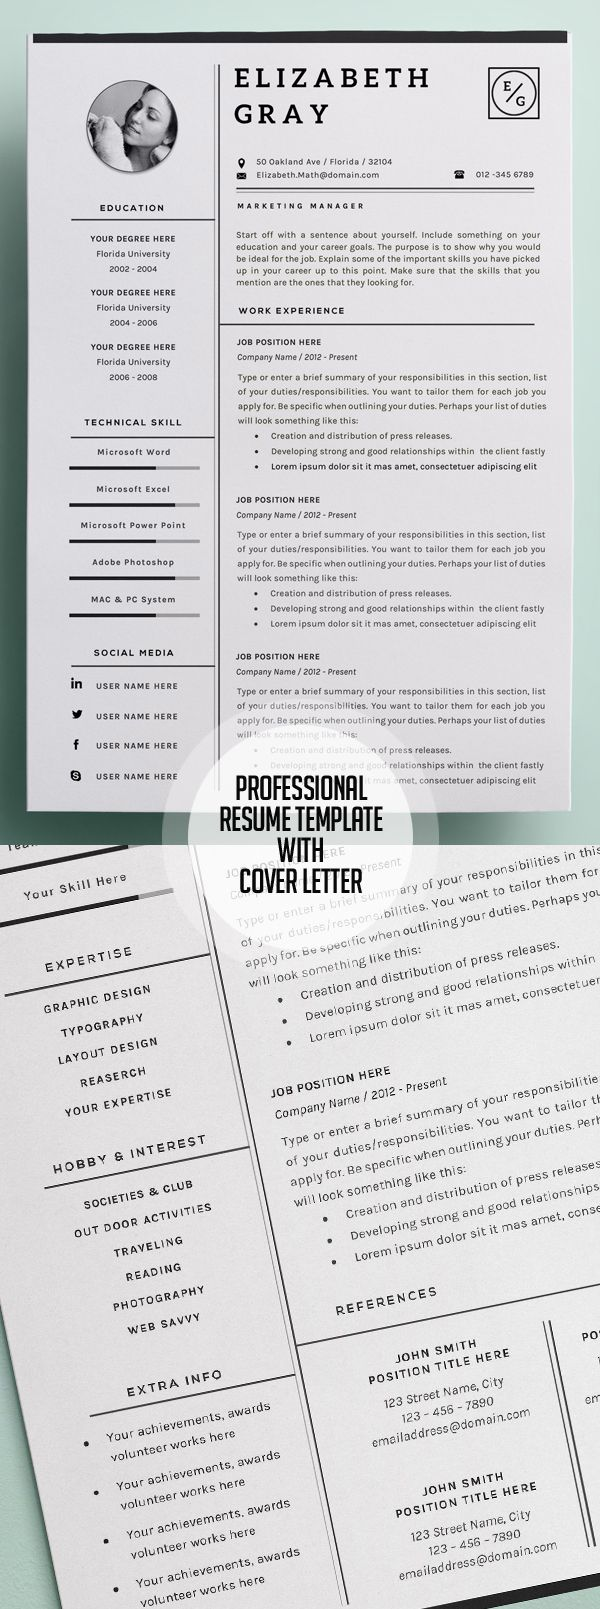 Opposenewapstandardsus  Mesmerizing  Resume Ideas On Pinterest  Resume Resume Templates And  With Inspiring Professional And Modern Resume Template With Page Cover Cvtemplate With Amazing Different Resume Styles Also Research Assistant Resume Sample In Addition Electrical Engineering Resume Examples And Top Resume Services As Well As Strong Action Words For Resume Additionally Sample Resume Executive Assistant From Pinterestcom With Opposenewapstandardsus  Inspiring  Resume Ideas On Pinterest  Resume Resume Templates And  With Amazing Professional And Modern Resume Template With Page Cover Cvtemplate And Mesmerizing Different Resume Styles Also Research Assistant Resume Sample In Addition Electrical Engineering Resume Examples From Pinterestcom